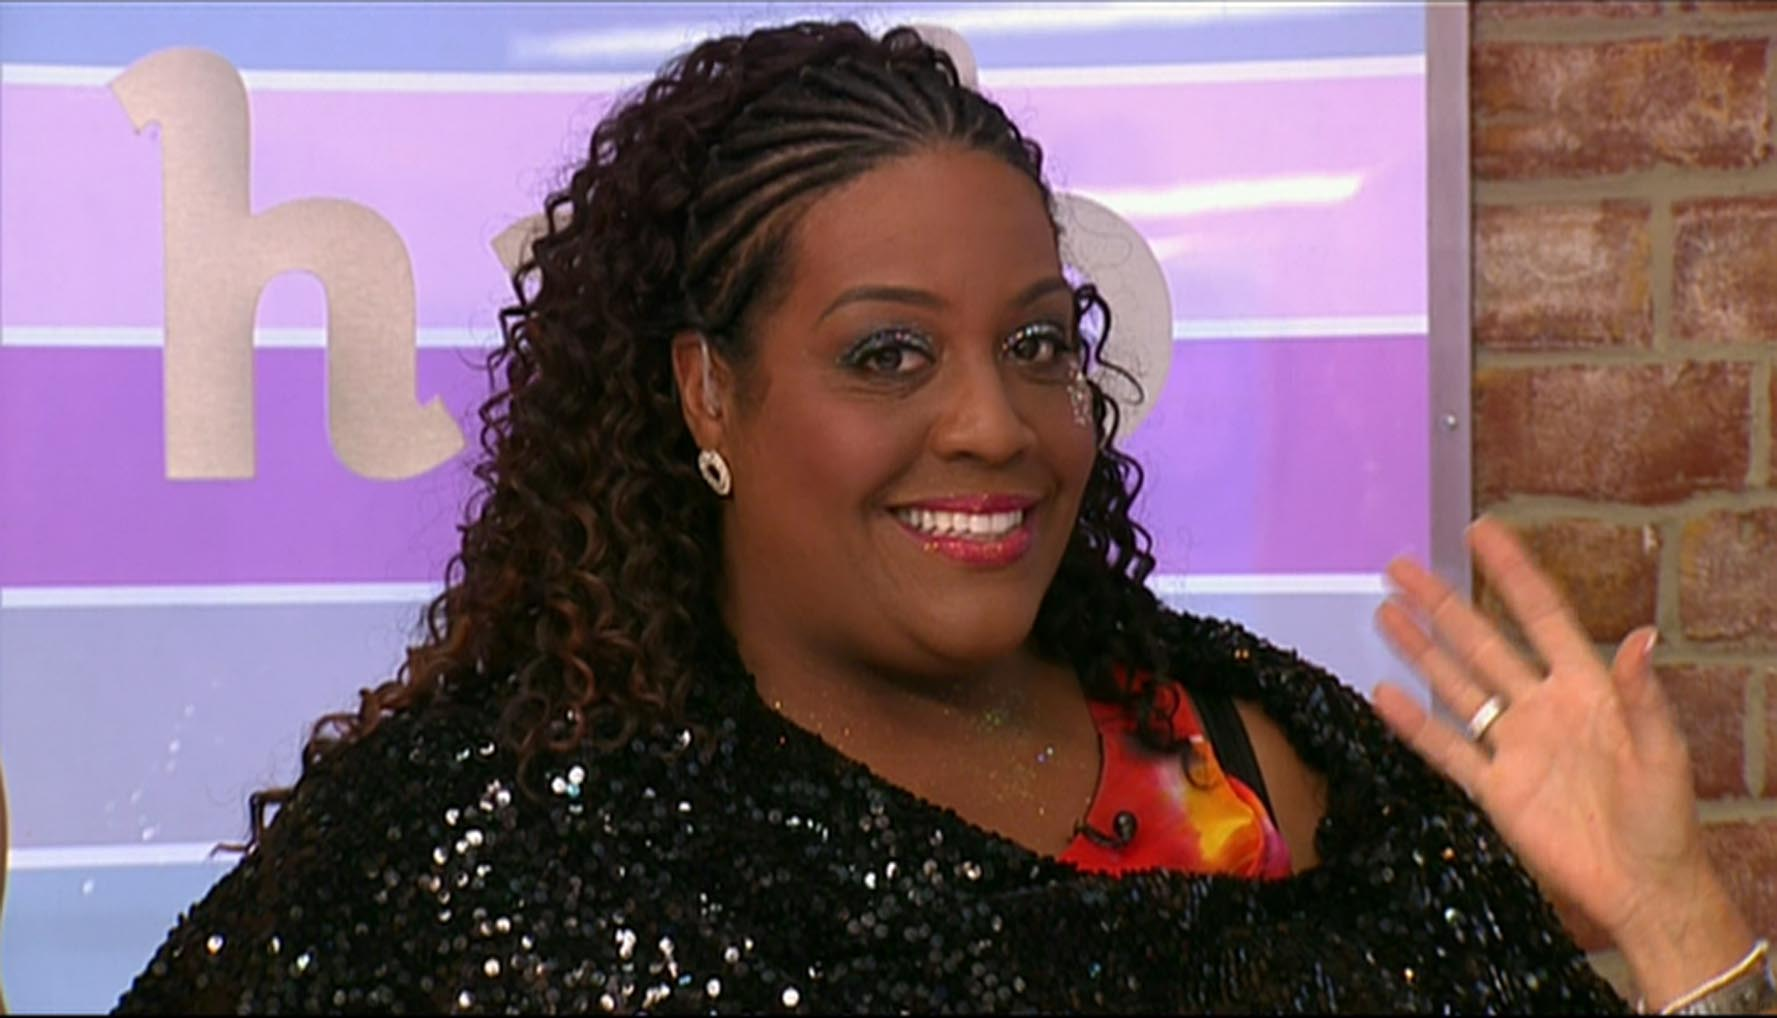 Alison Hammond is joining Judy Murray and Frankie Bridge on the Strictly Come Dancing dancefloor